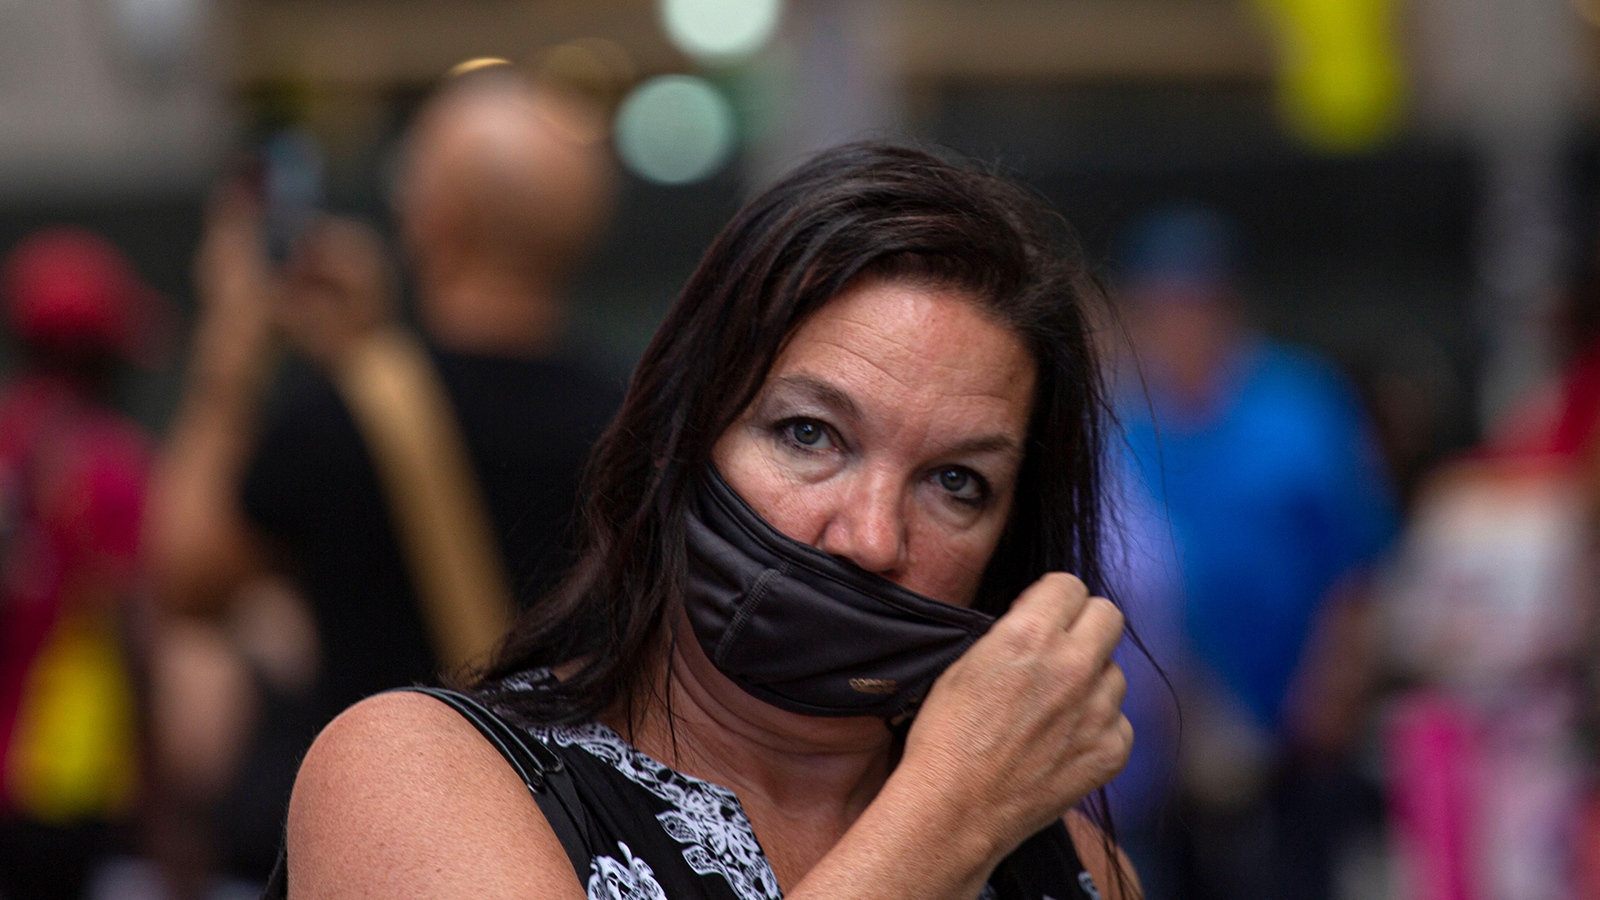 A woman wears a mask in Midtown Manhattan in New York on July 29.